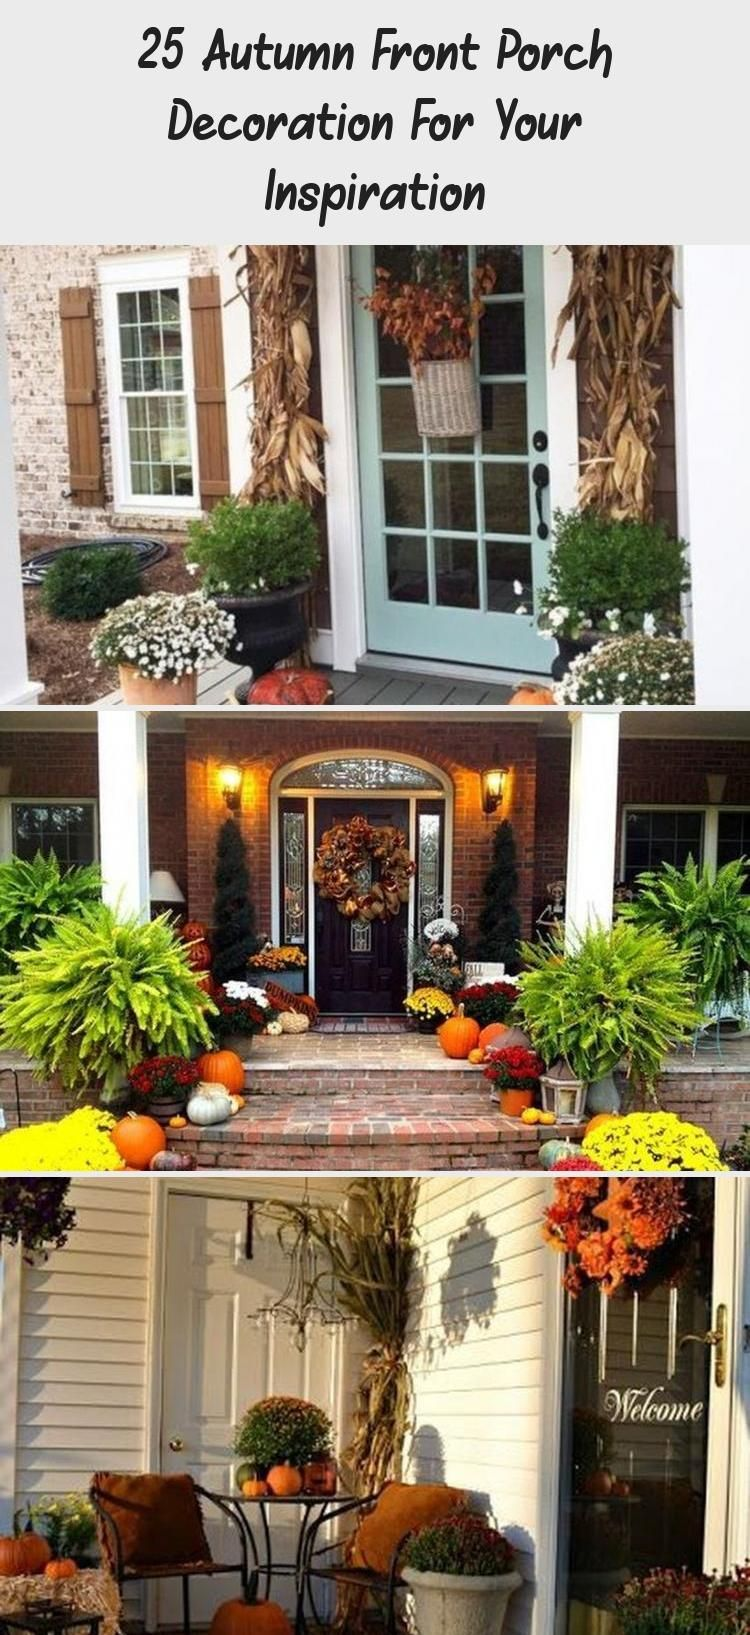 25 Autumn Front Porch Decoration For Your Inspiration #fallfrontporchdecor 25 Autumn Front Porch Decoration for Your Inspiration #YellowFrontDoors #GlassFrontDoors #FarmhouseFrontDoors #ContemporaryFrontDoors #DoubleFrontDoors #fallfrontporchdecor